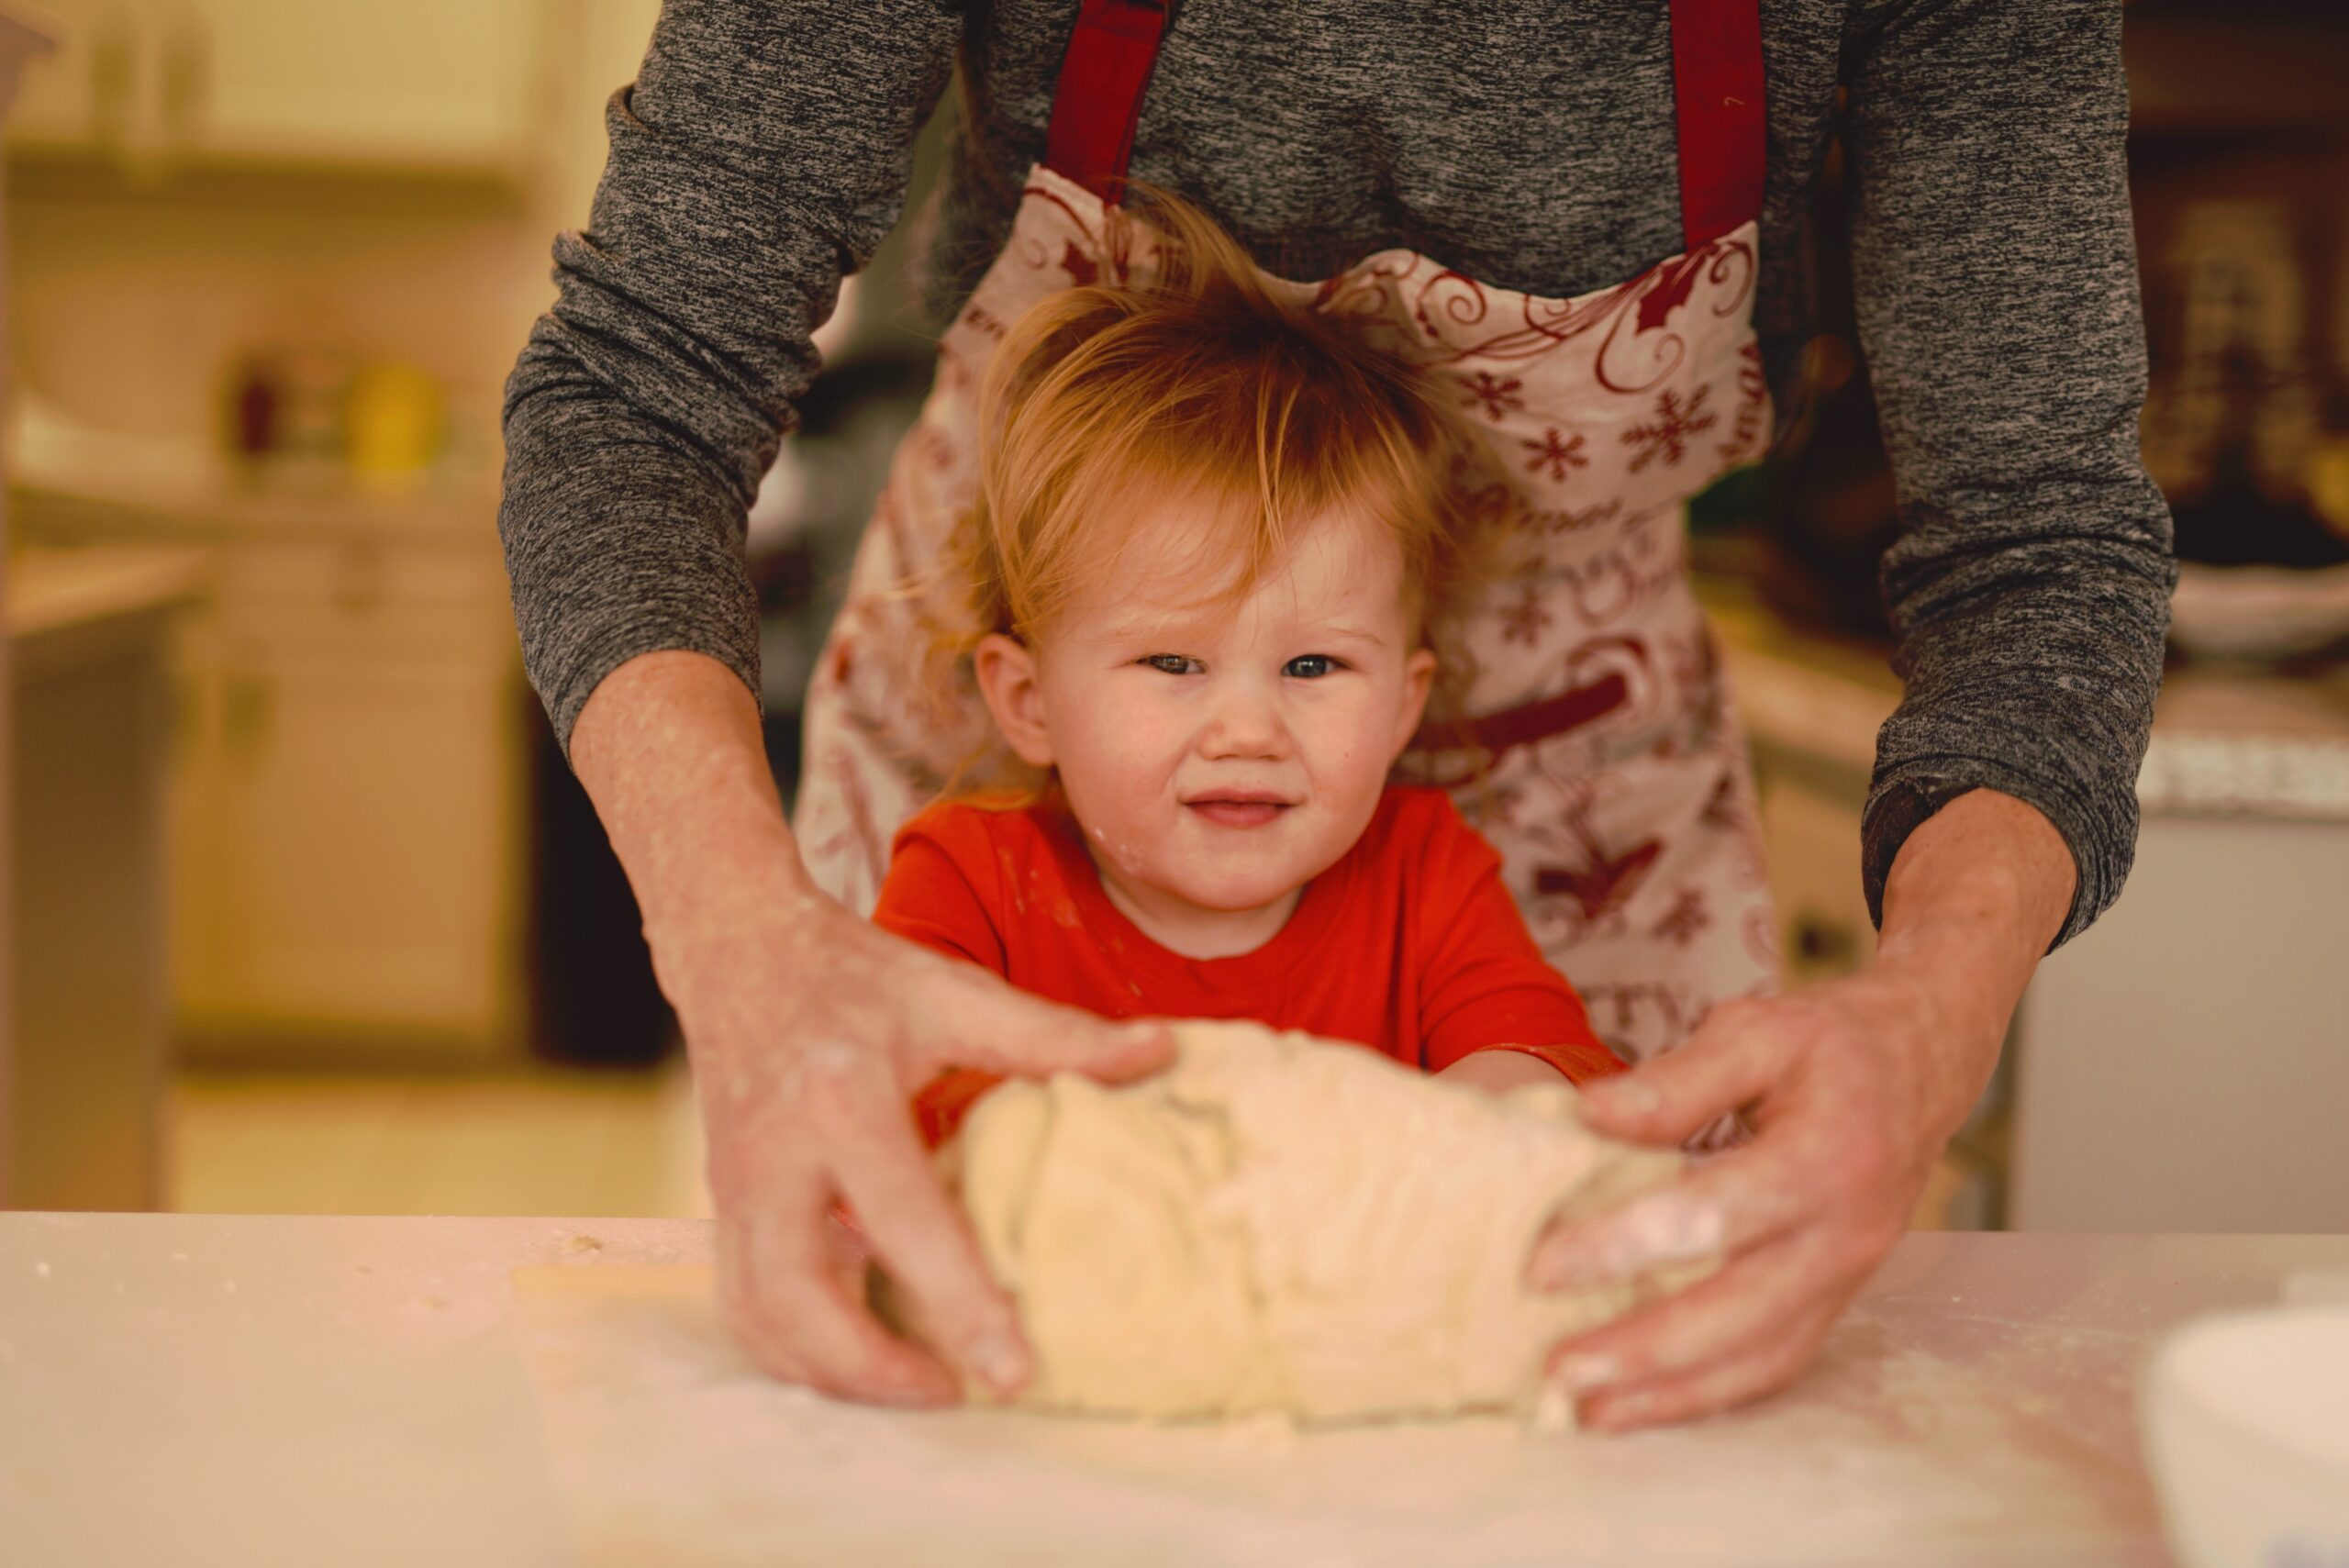 A woman kneads bread with a toddler.